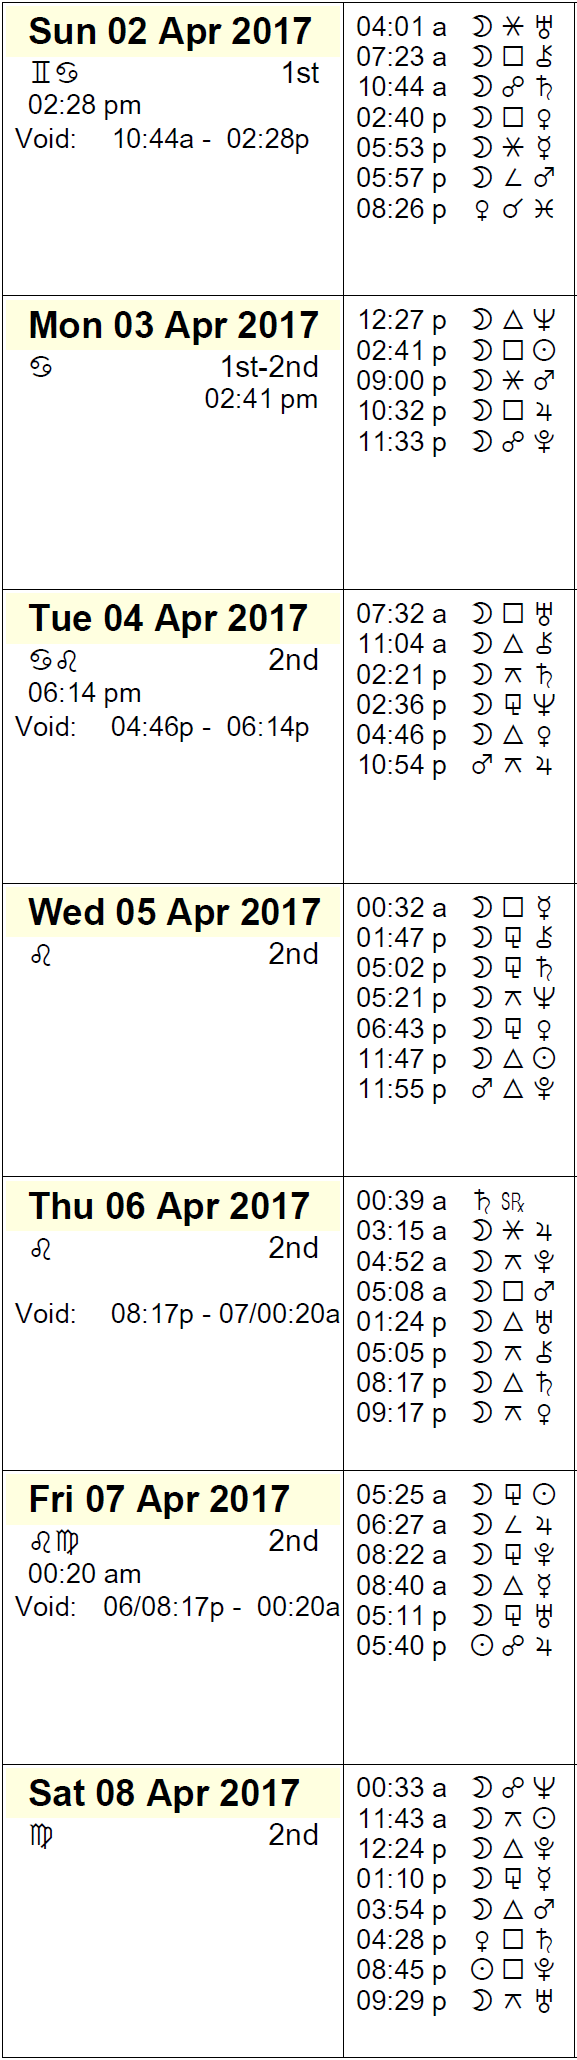 This Week in Astrology - April 2 to 8, 2017